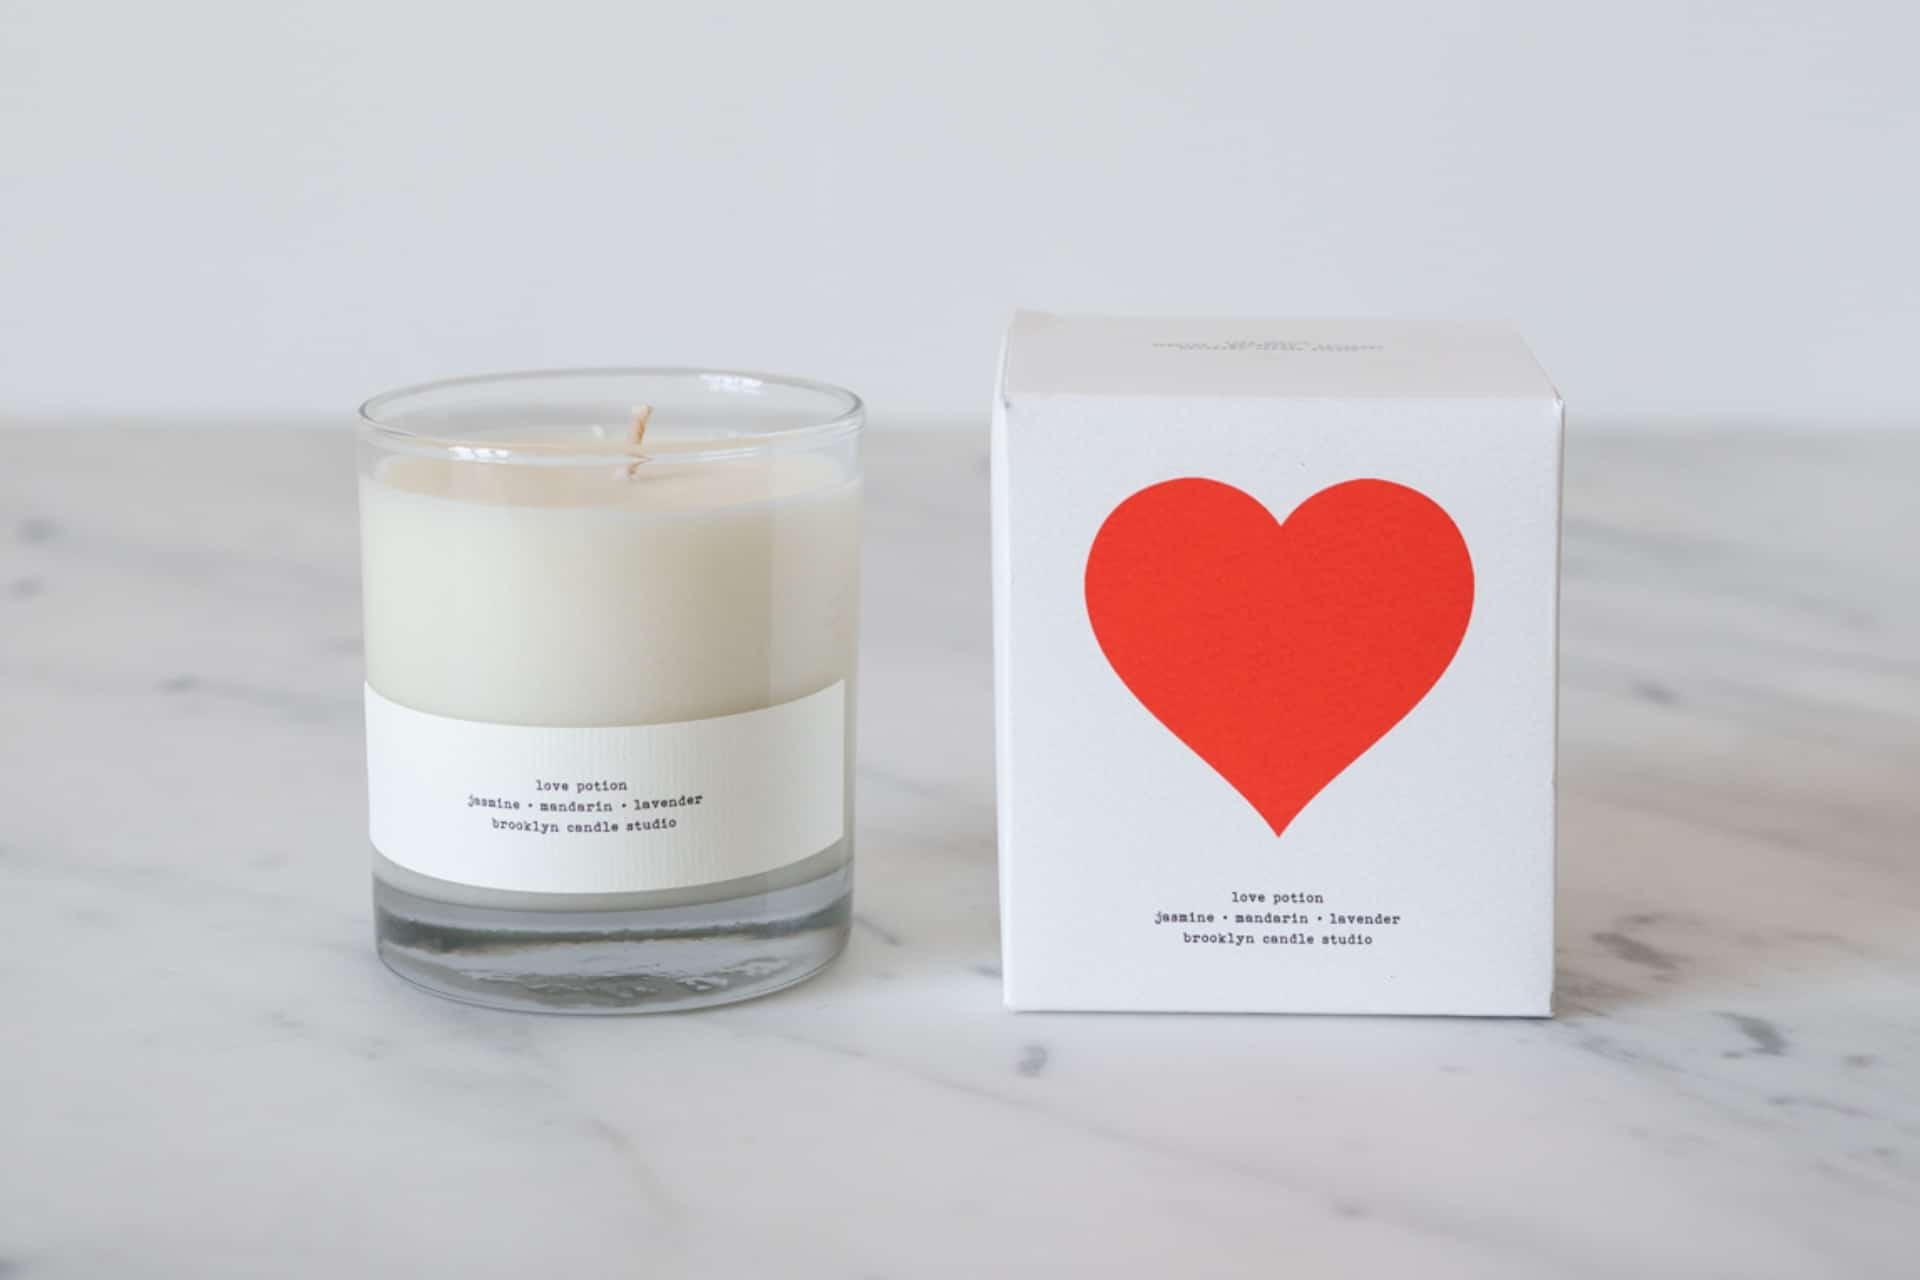 a candle sitting next to a box with a heart on it